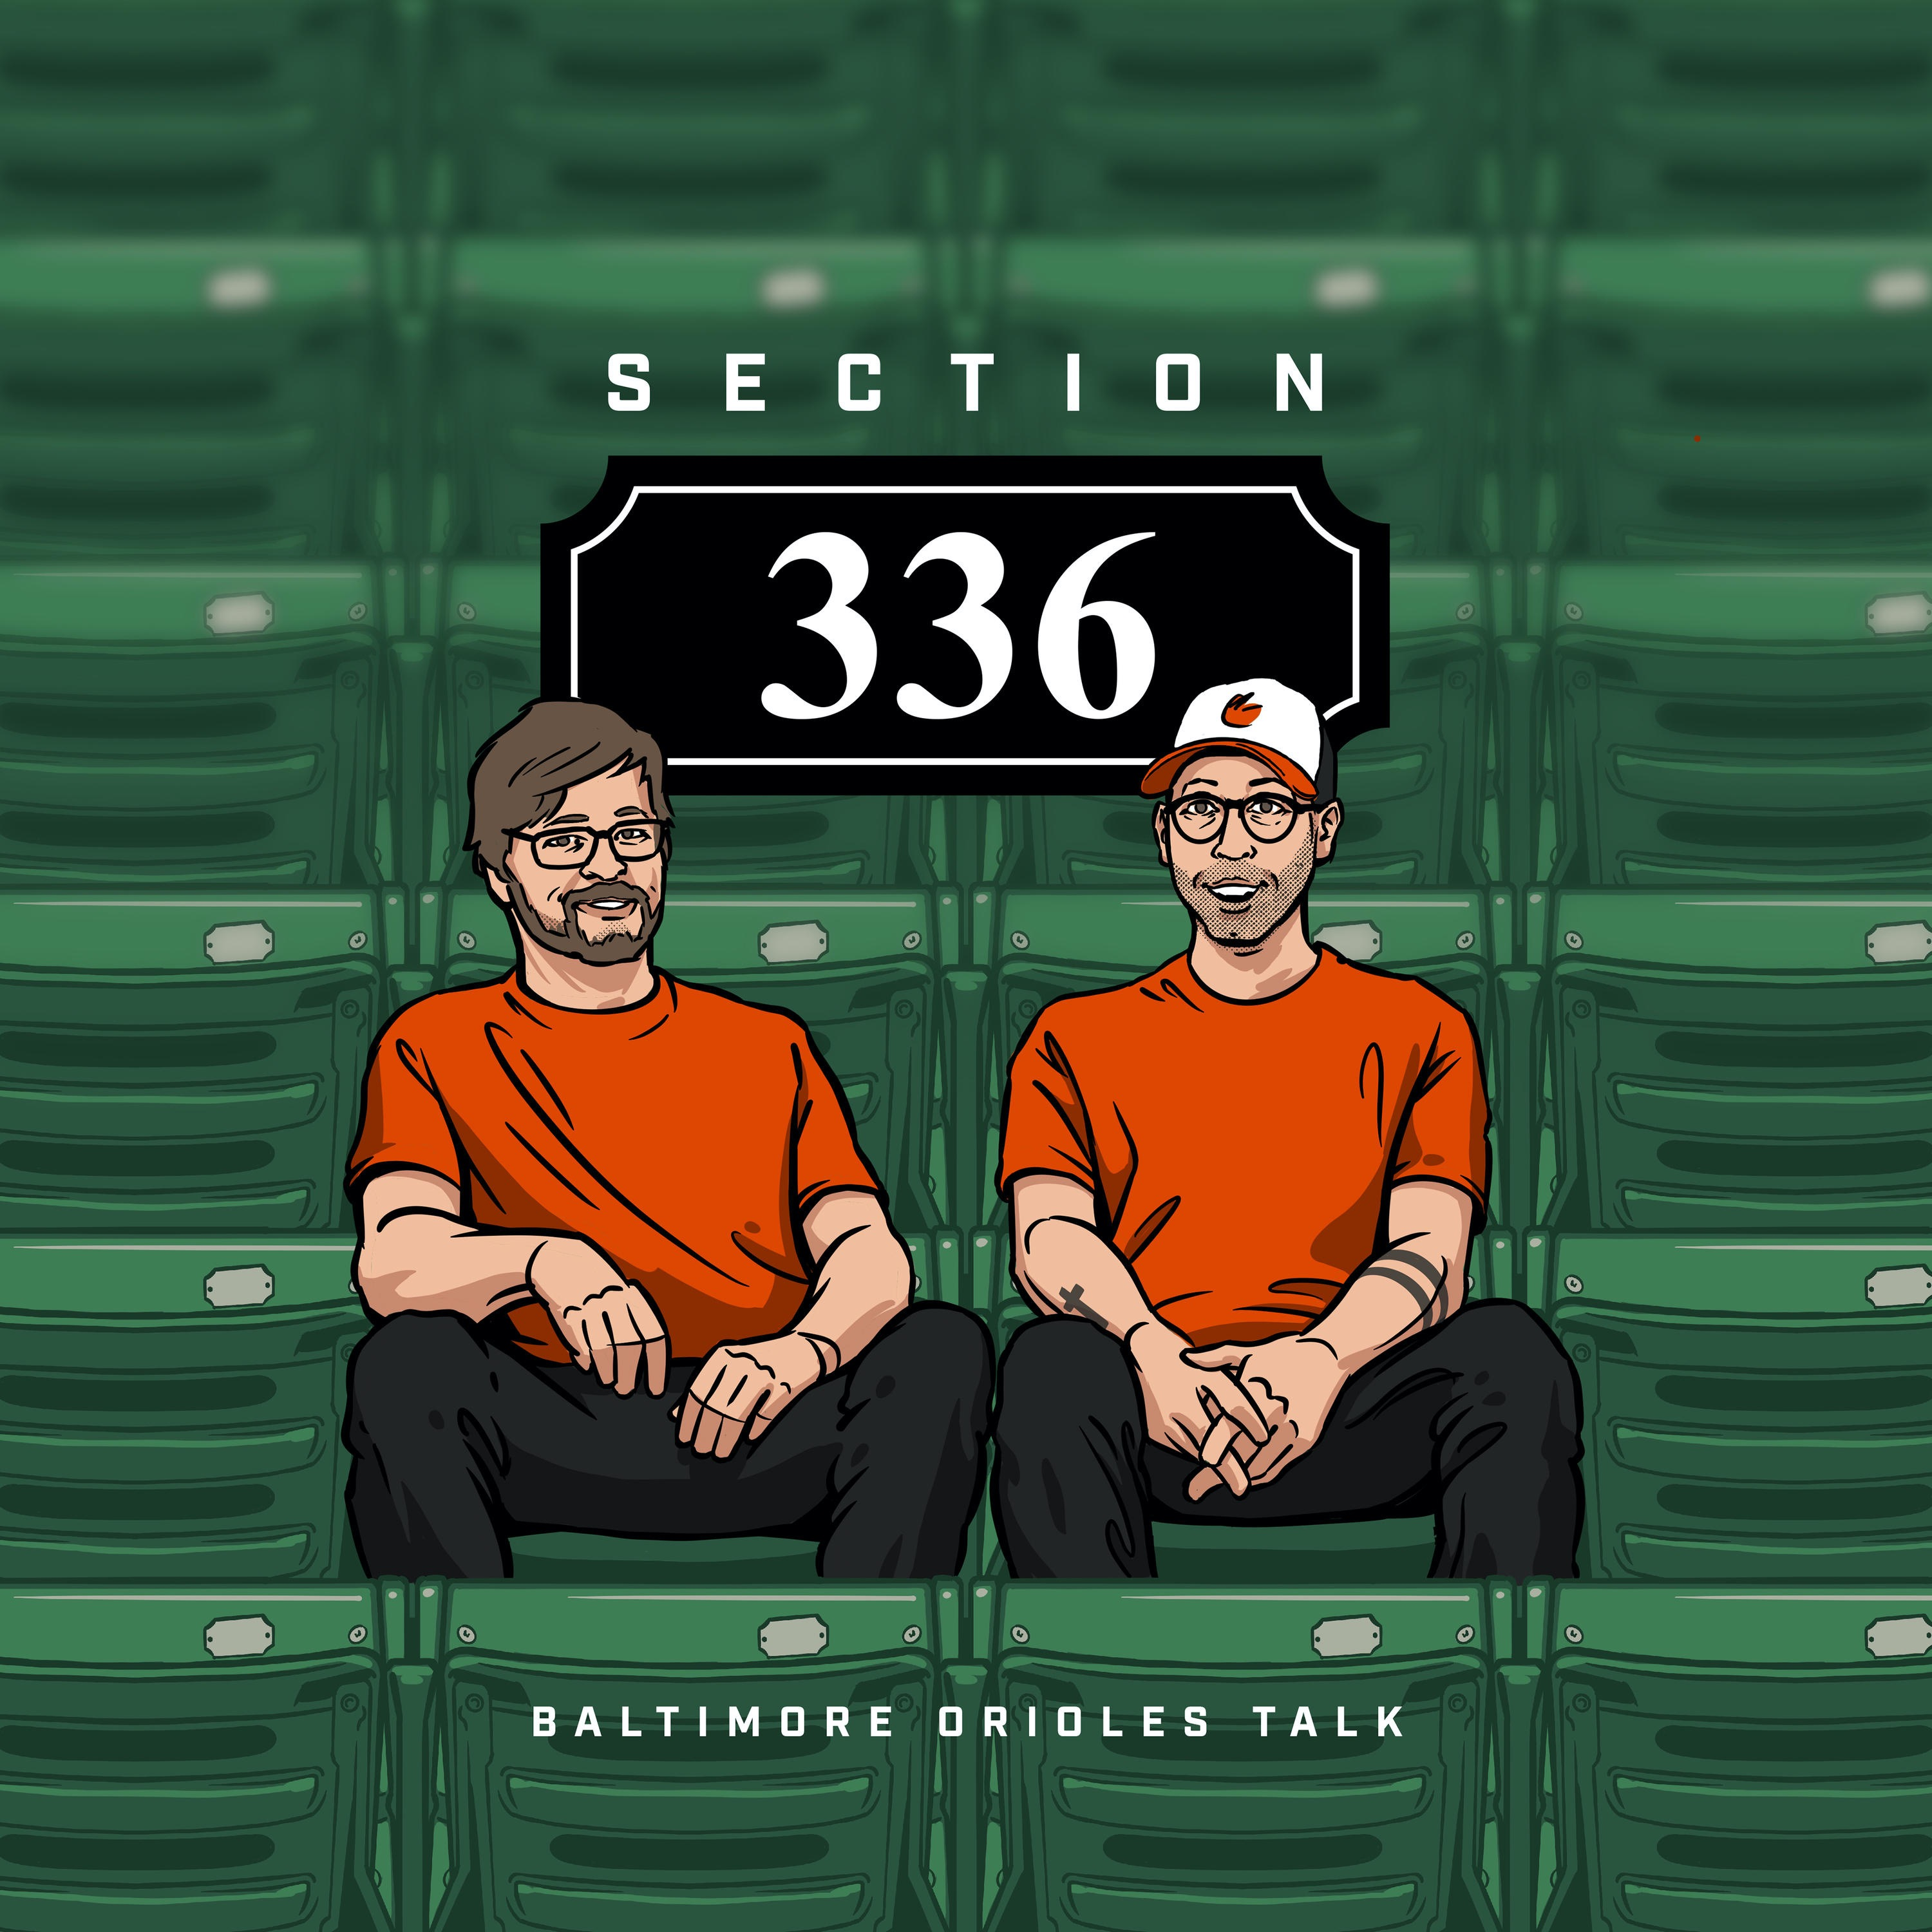 Section 336 - Baltimore Orioles Talk